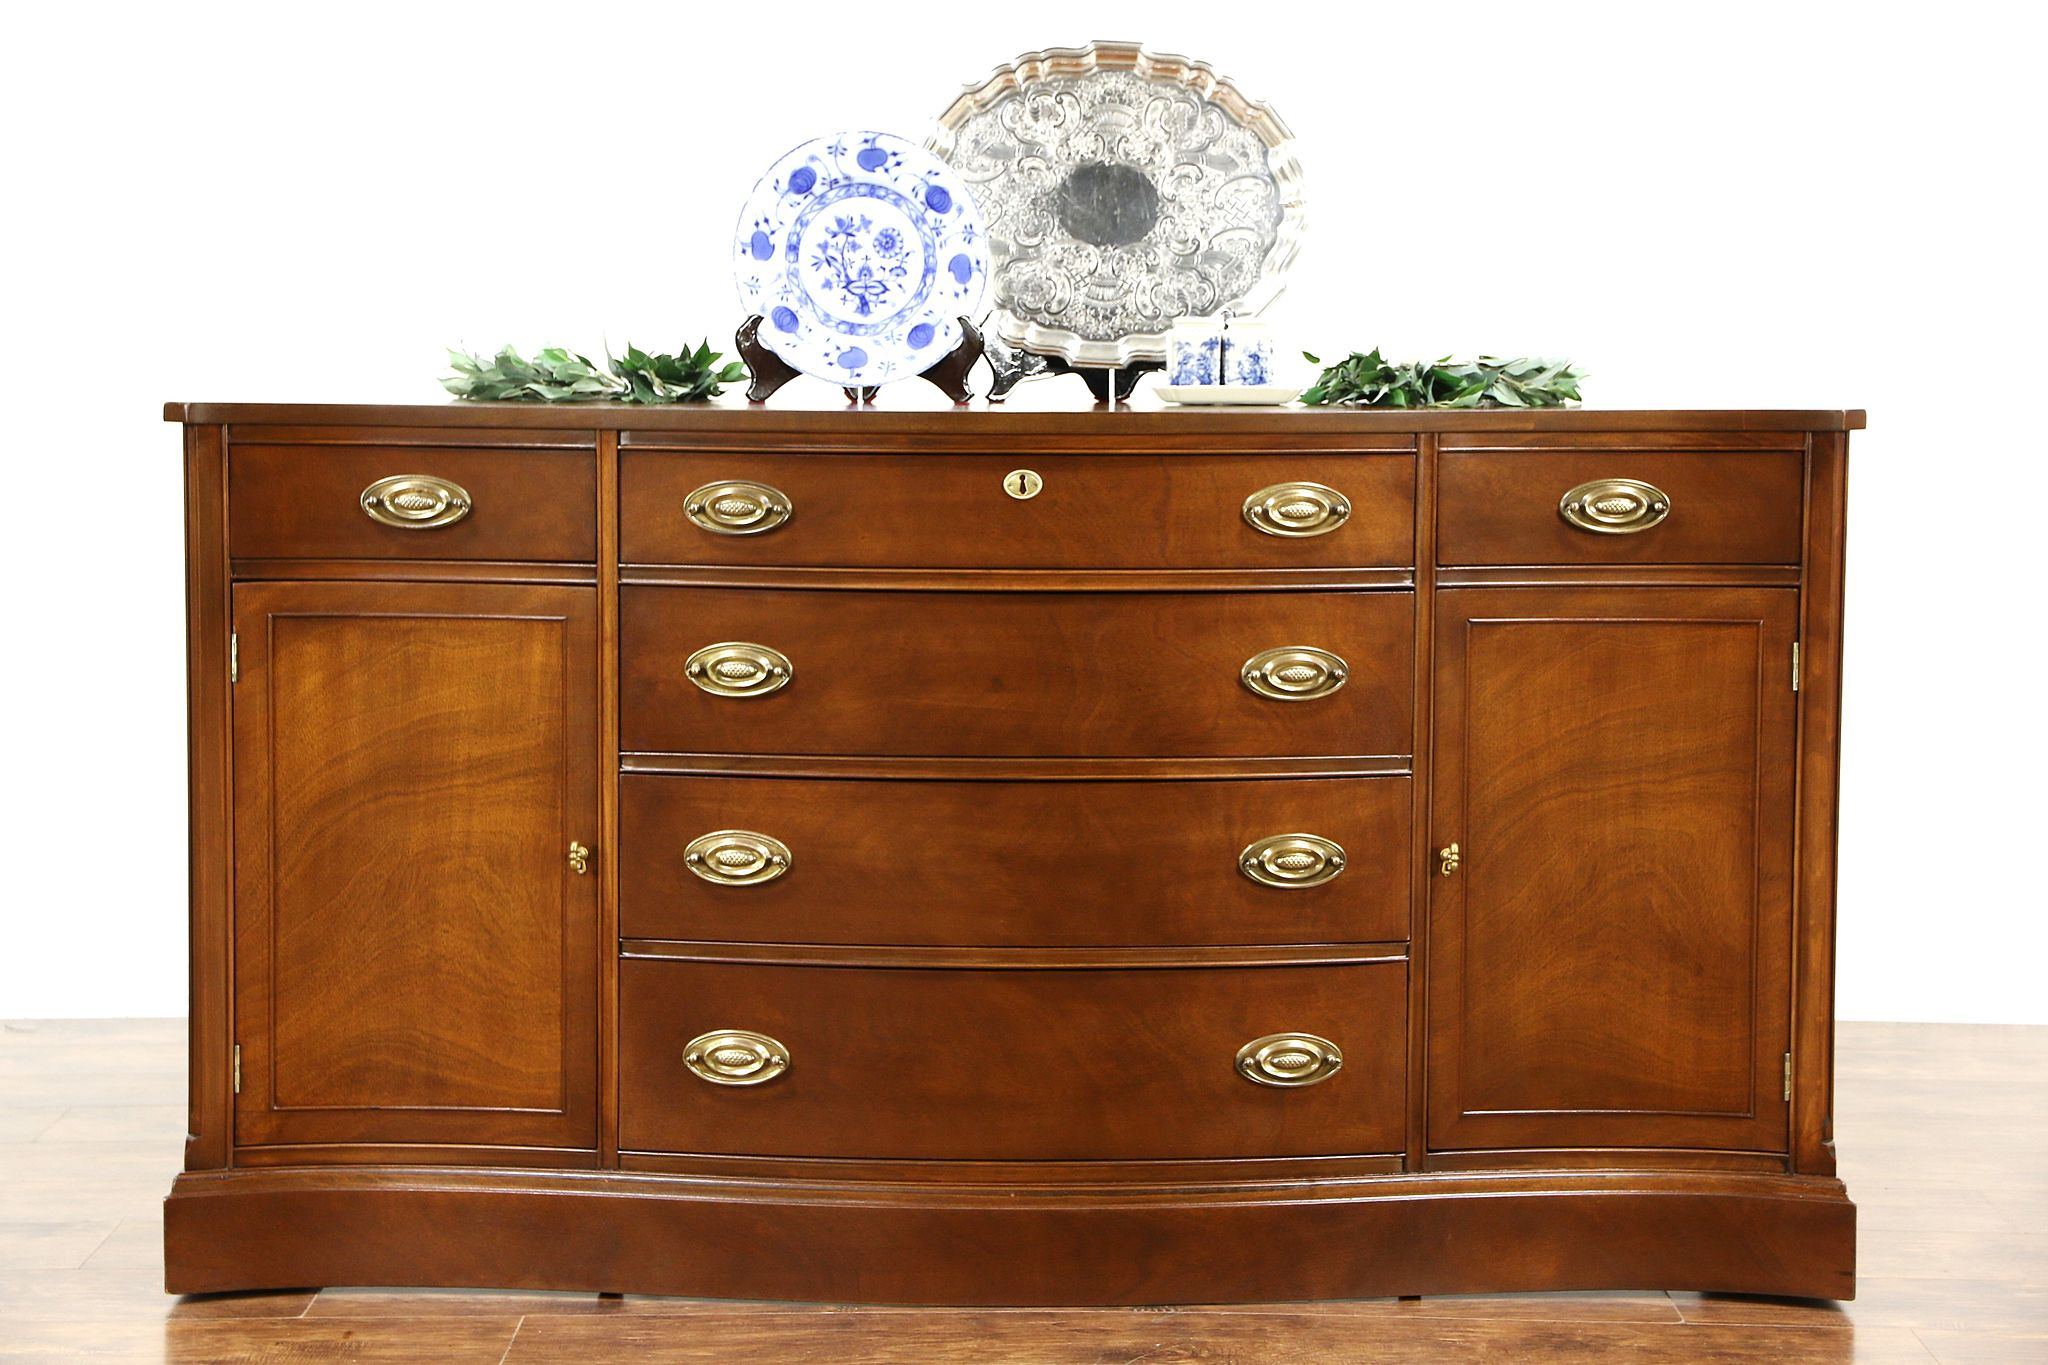 Sold Traditional Vintage Mahogany Sideboard Server Or Buffet Serpentine Front Harp Gallery Antiques Furniture